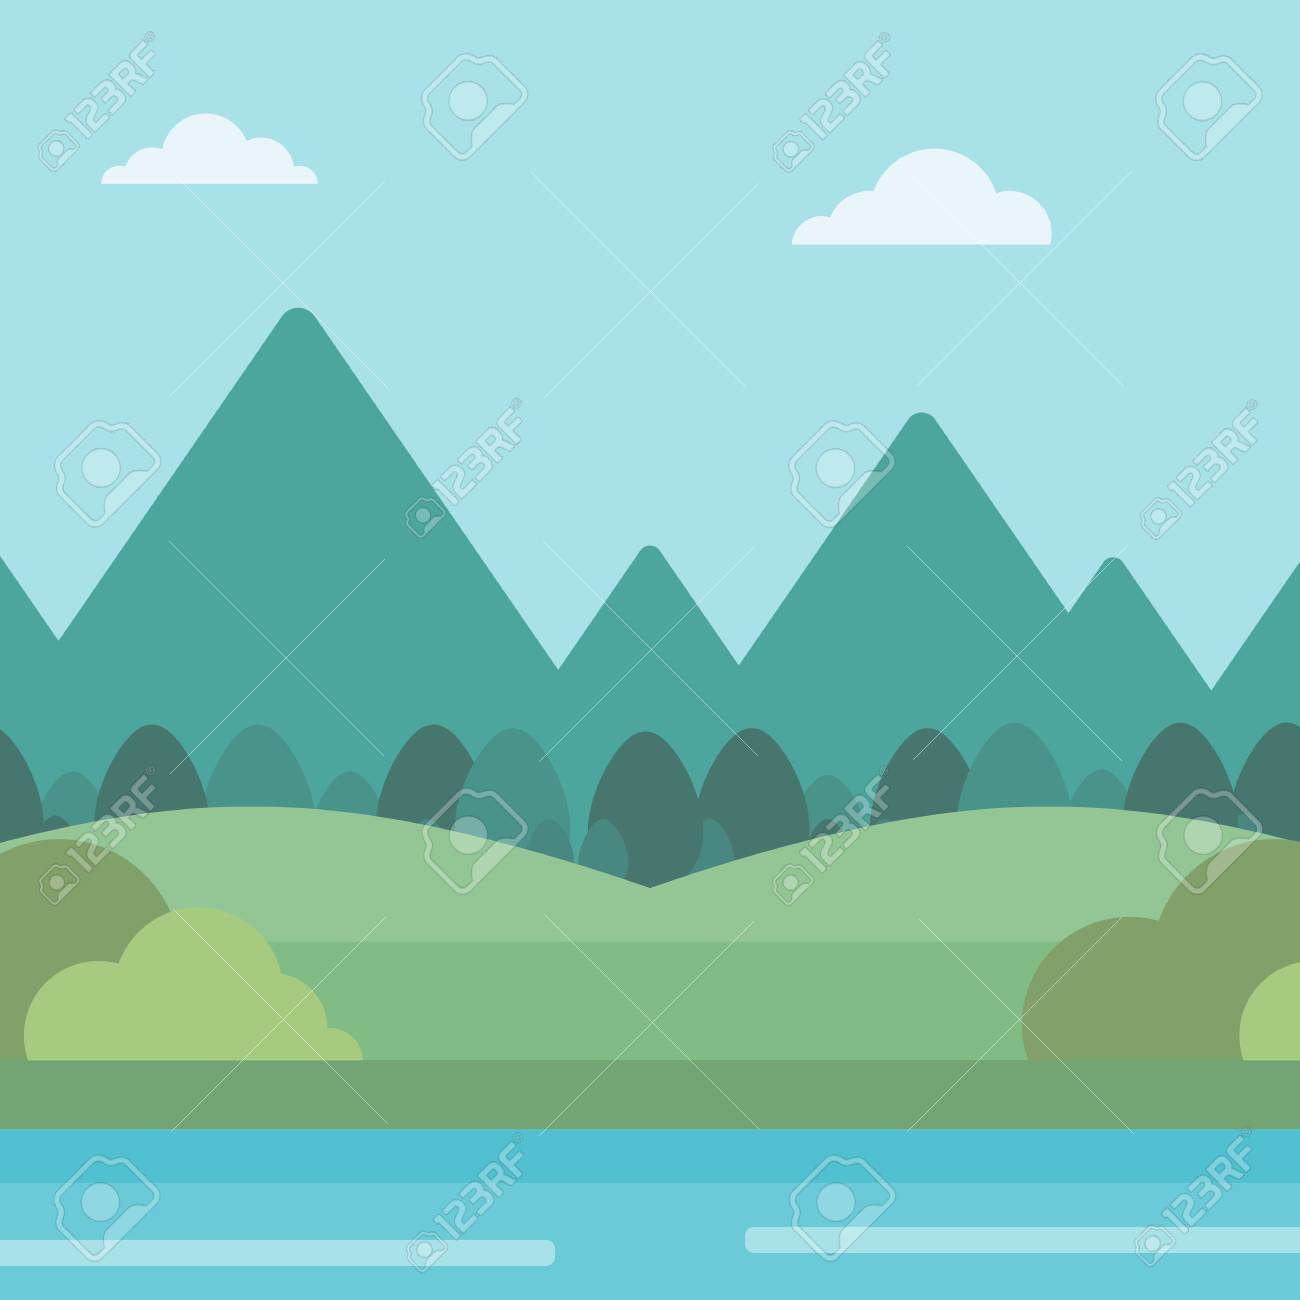 background of landscape with mountains and river vector flat royalty free cliparts vectors and stock illustration image 54902543 background of landscape with mountains and river vector flat royalty free cliparts vectors and stock illustration image 54902543